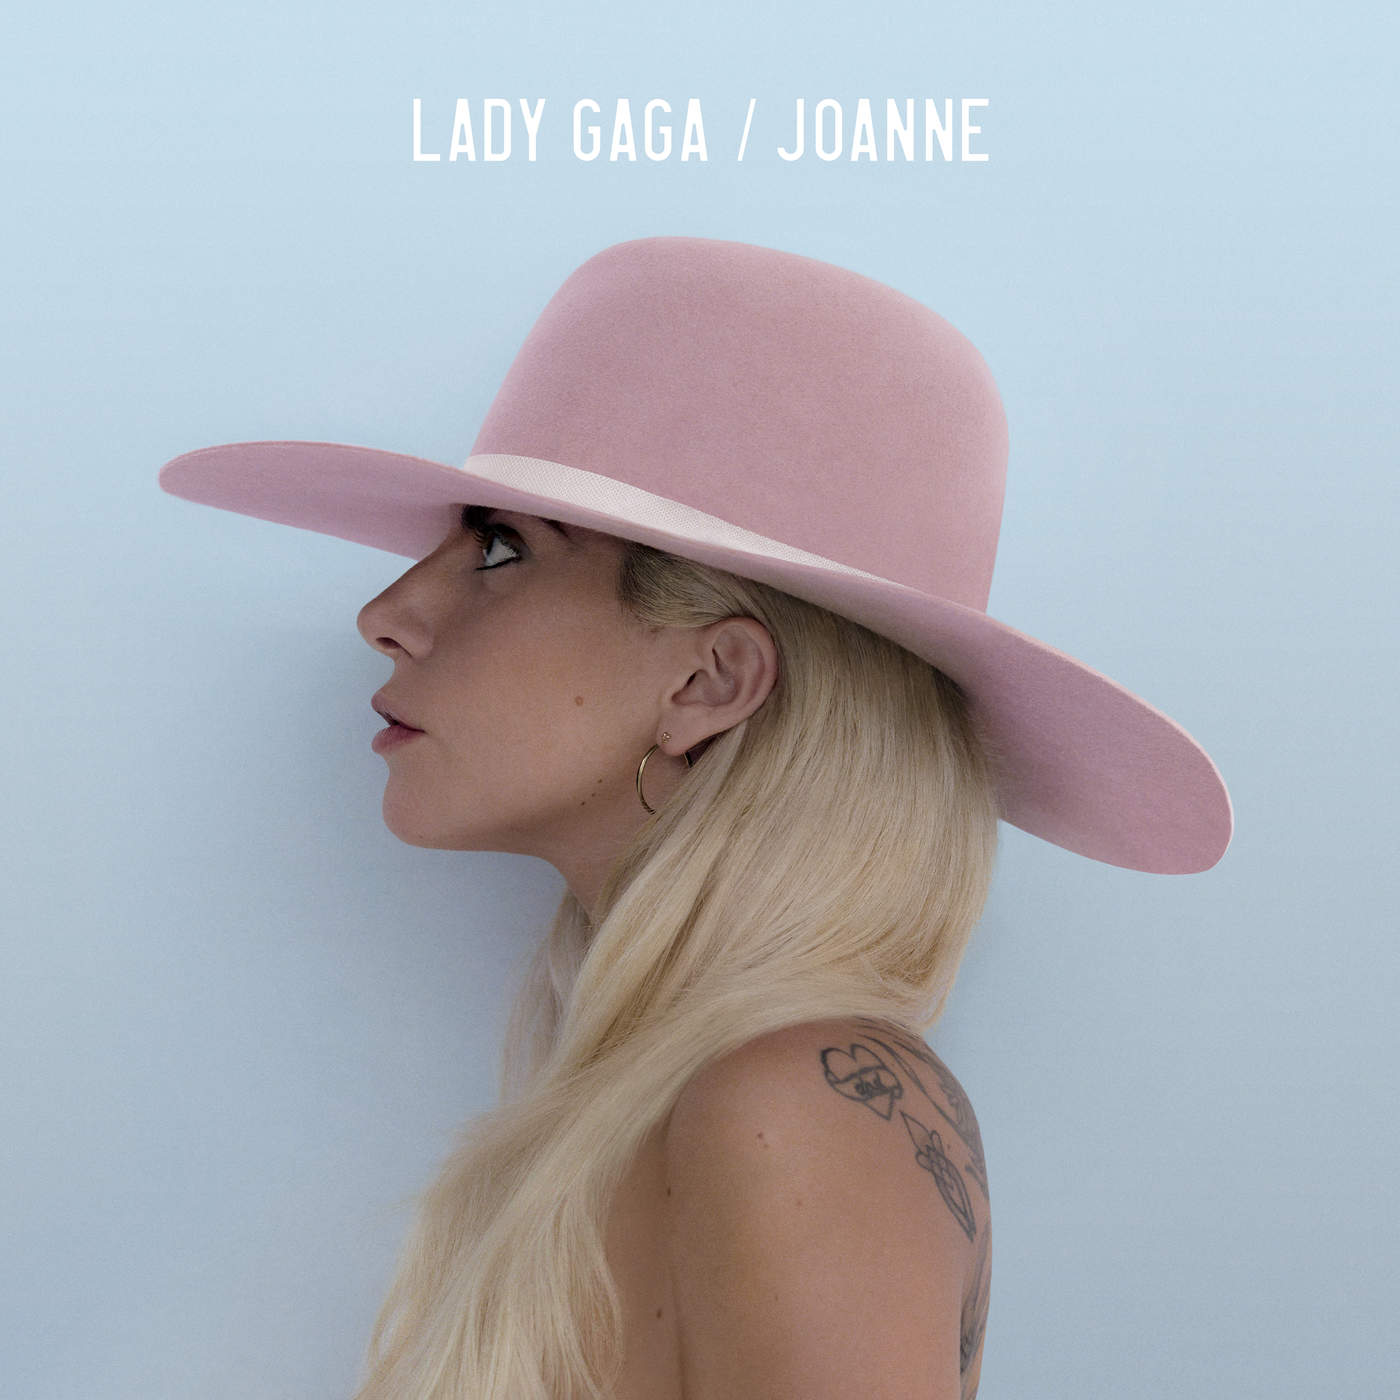 Lady Gaga - A-Yo - Single Cover